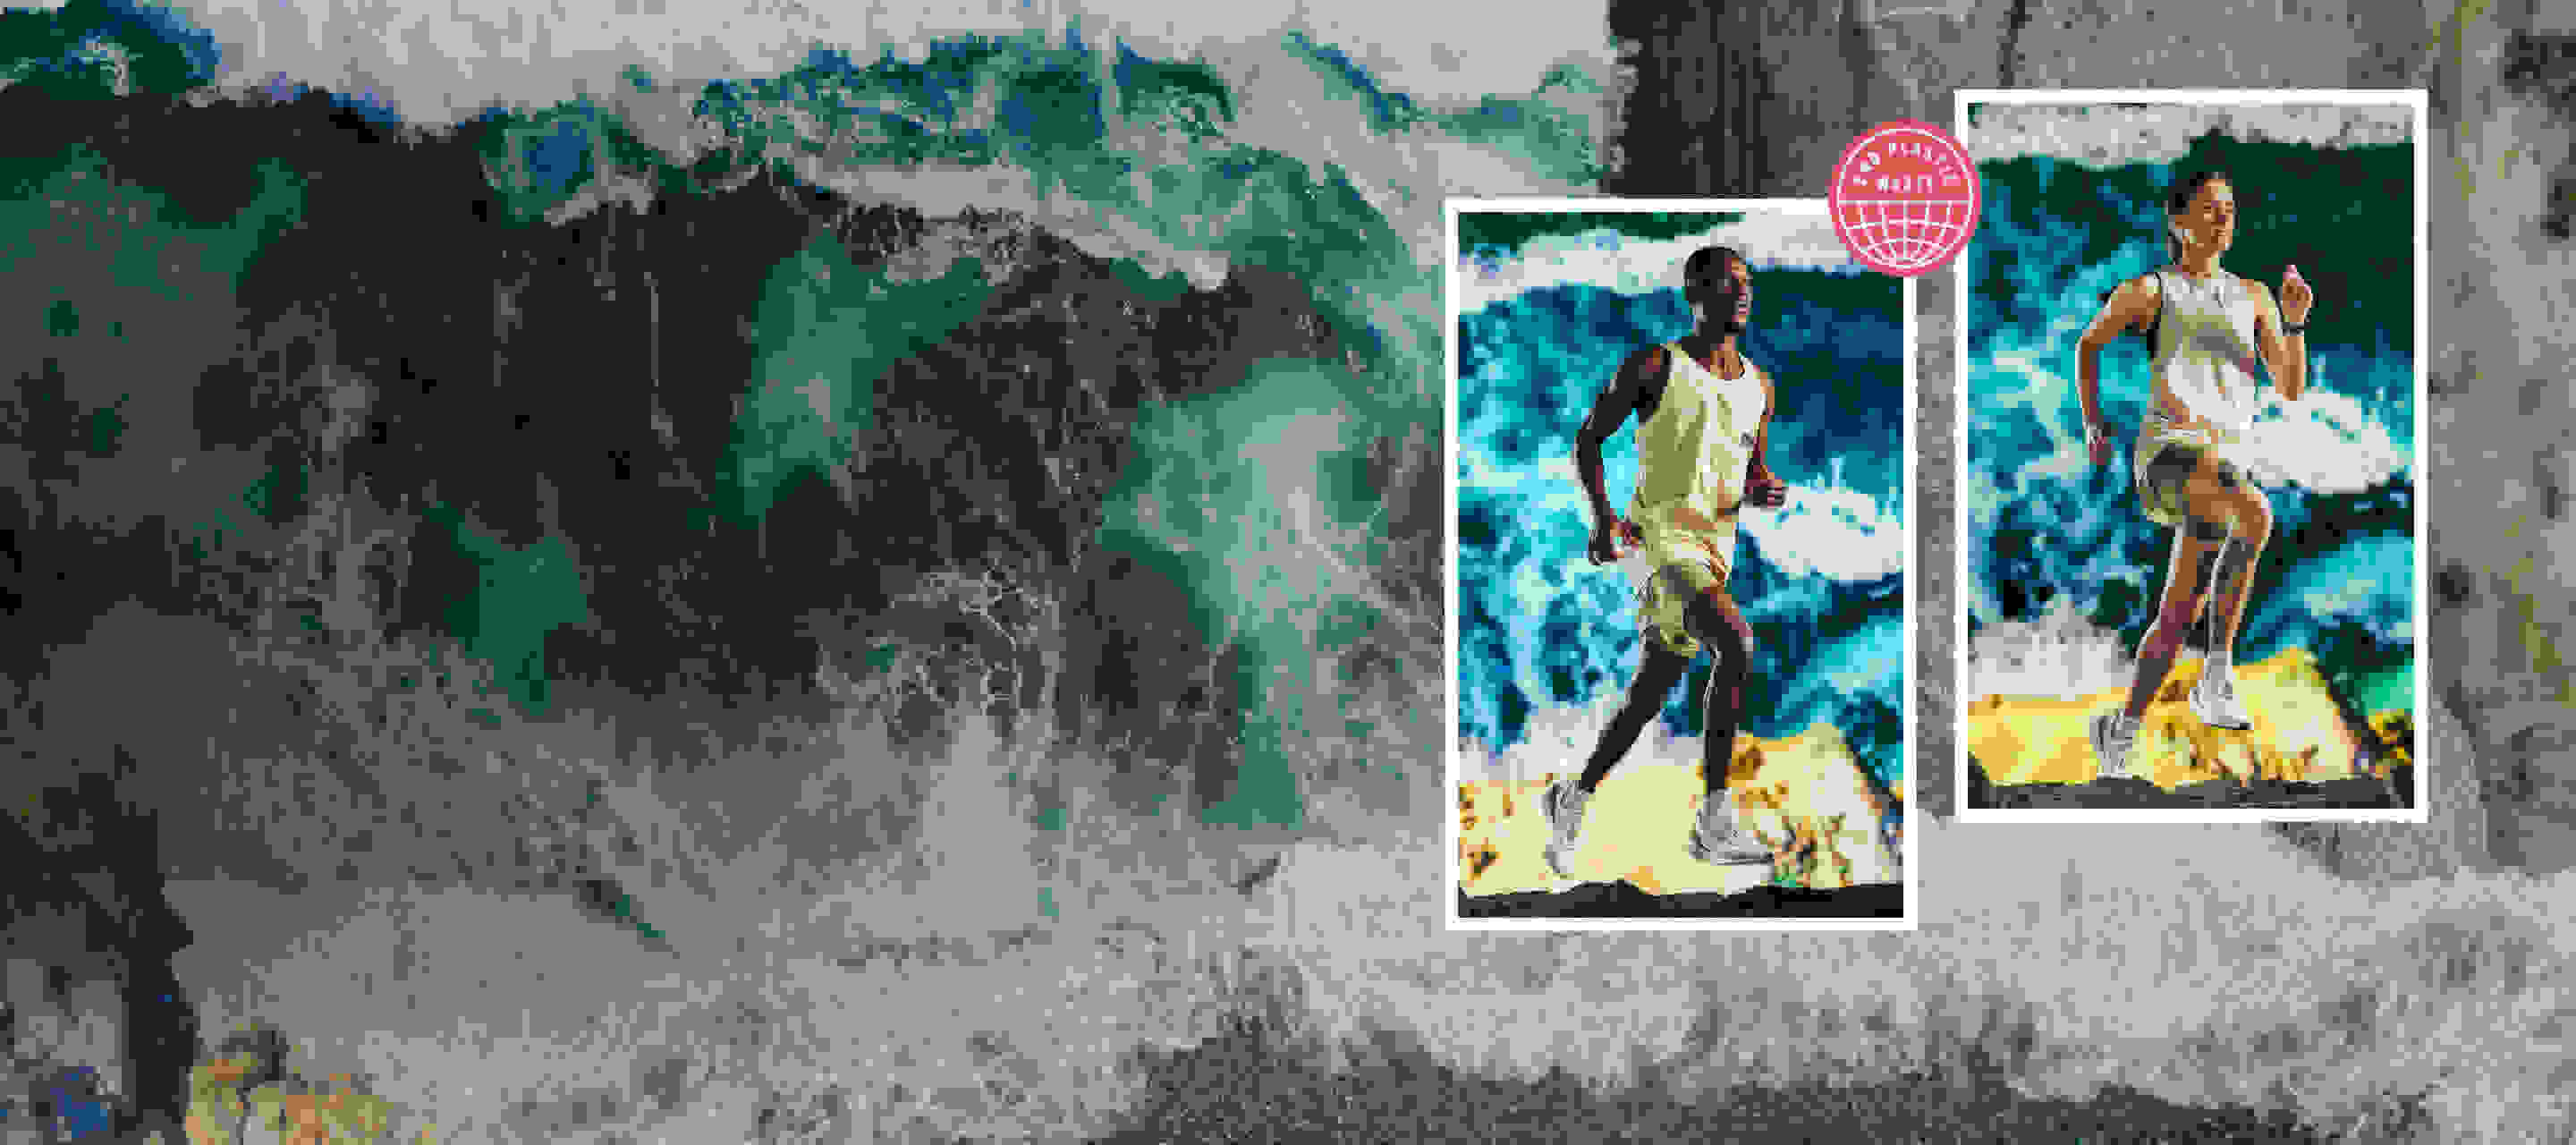 An ocean scene with 2 athletes wearing the new adidas x Parle running collection in the foreground